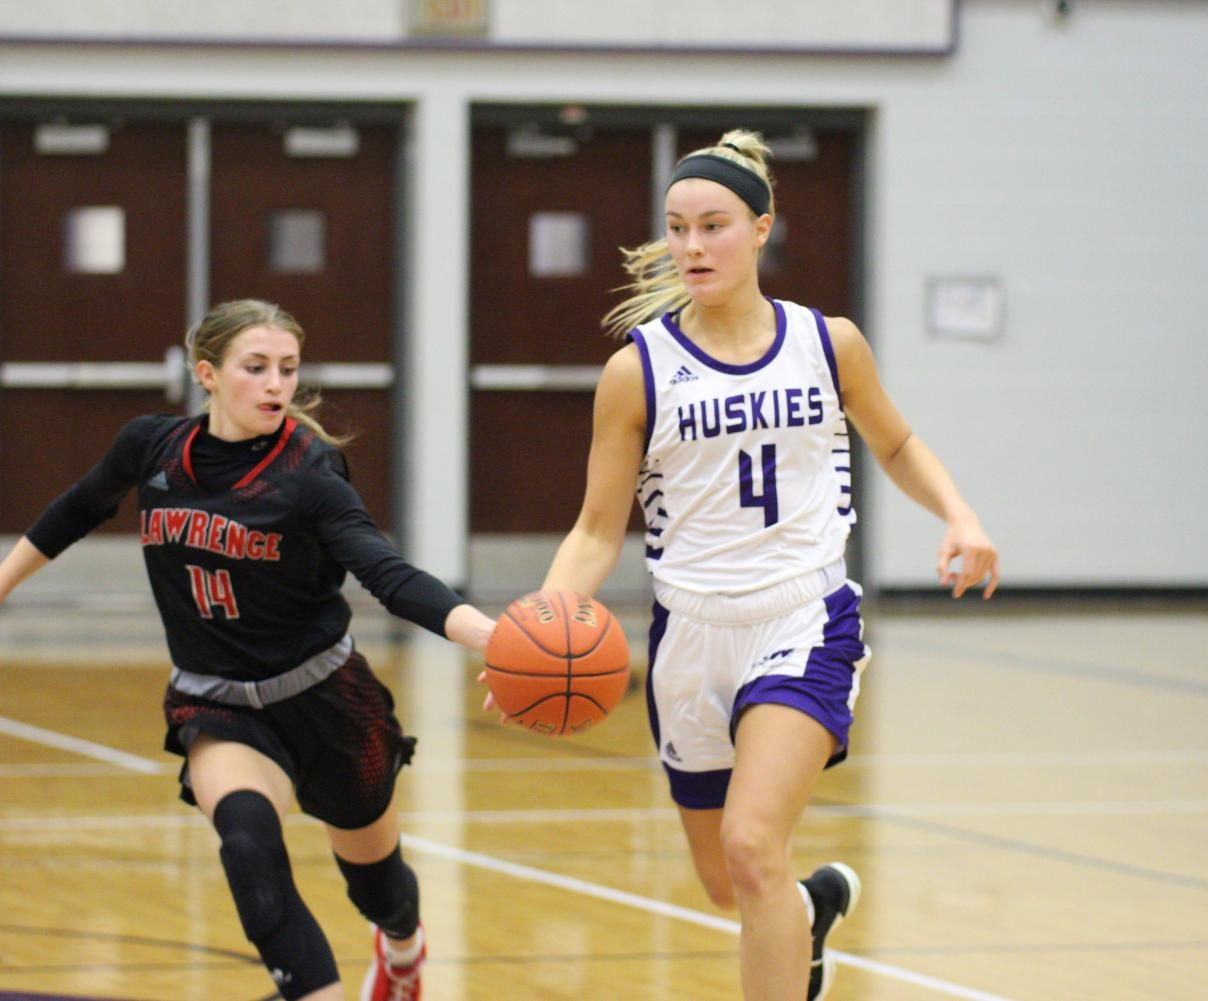 Senior Grace Coble avoids a turnover while dribbling the ball down the court.